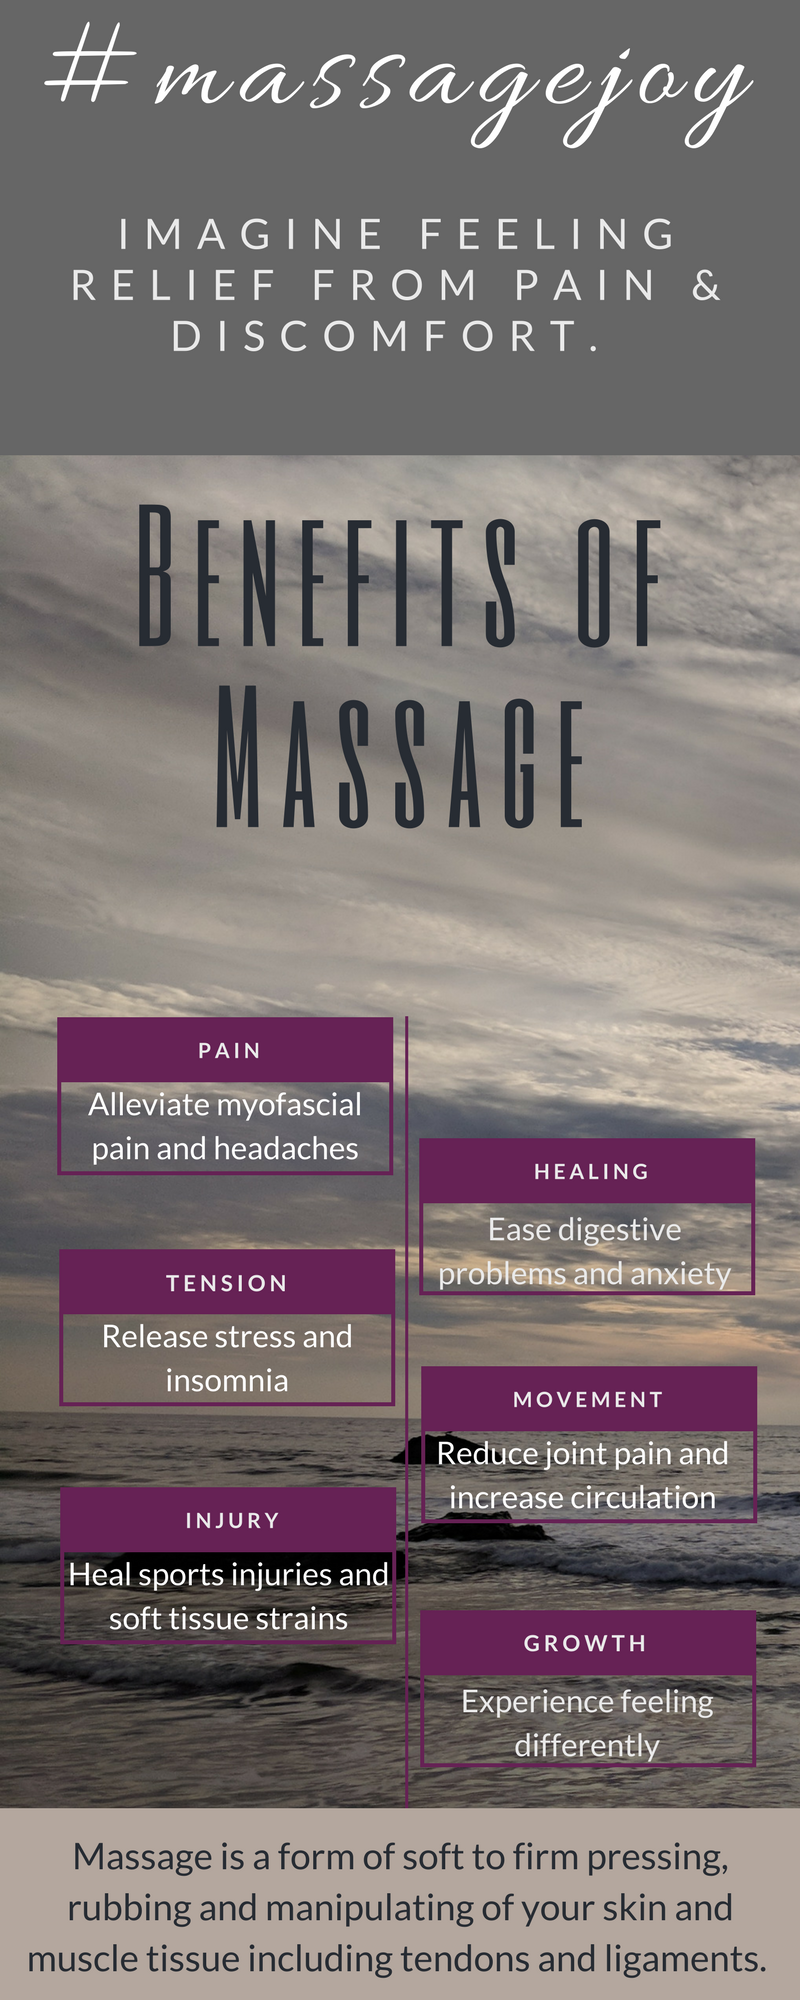 benefits of massage.png